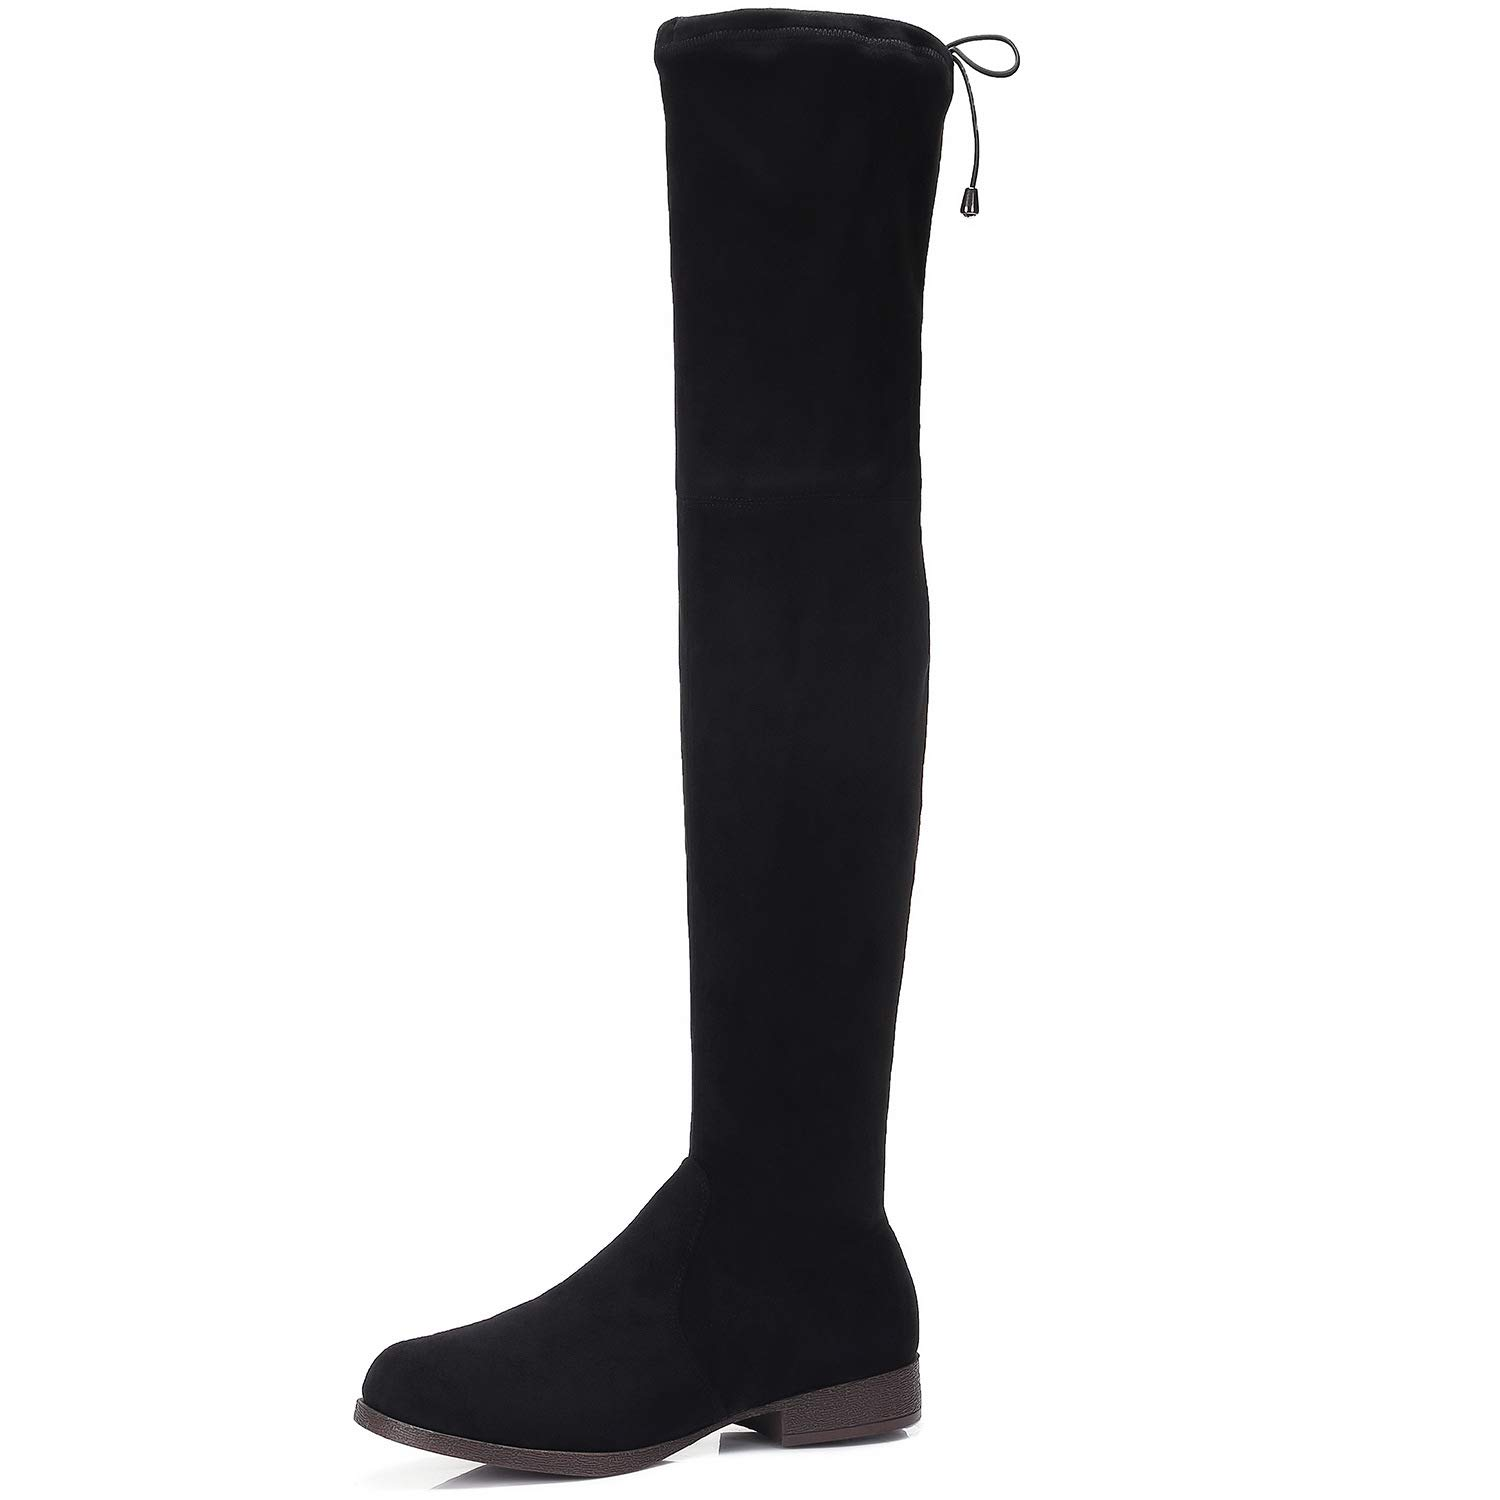 87347a0517e CAMEL CROWN Women's Trendy Over The Knee Boots Sexy Drawstring ...